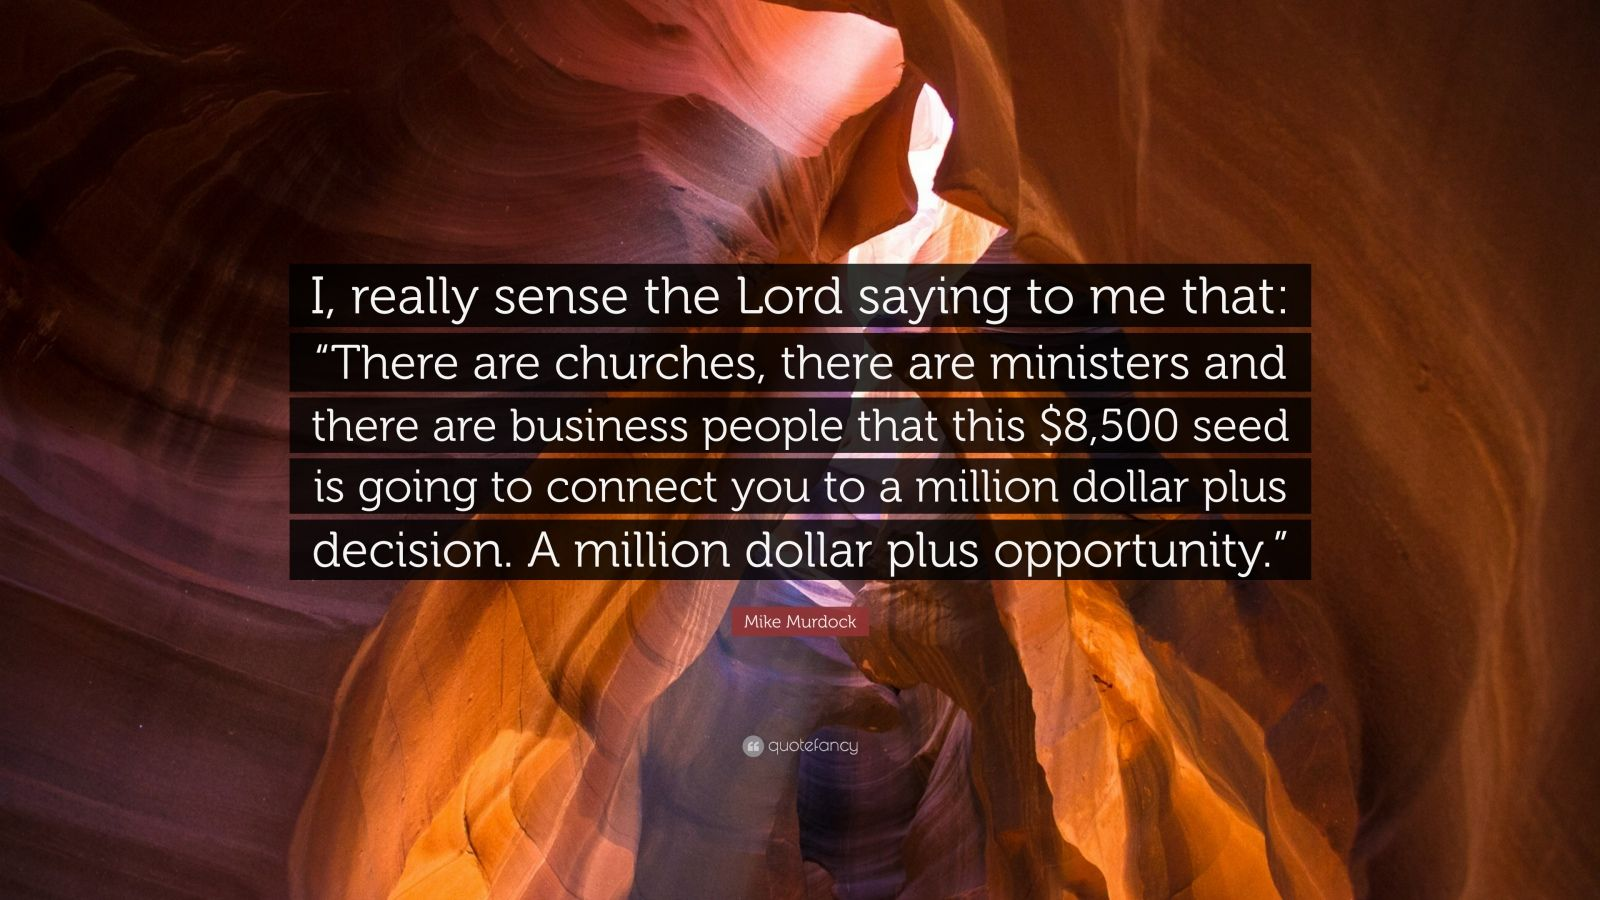 """Mike Murdock Quote: """"I, really sense the Lord saying to me that: """"There are churches, there are ministers and there are business people that this $8,500 seed is going to connect you to a million dollar plus decision. A million dollar plus opportunity."""""""""""